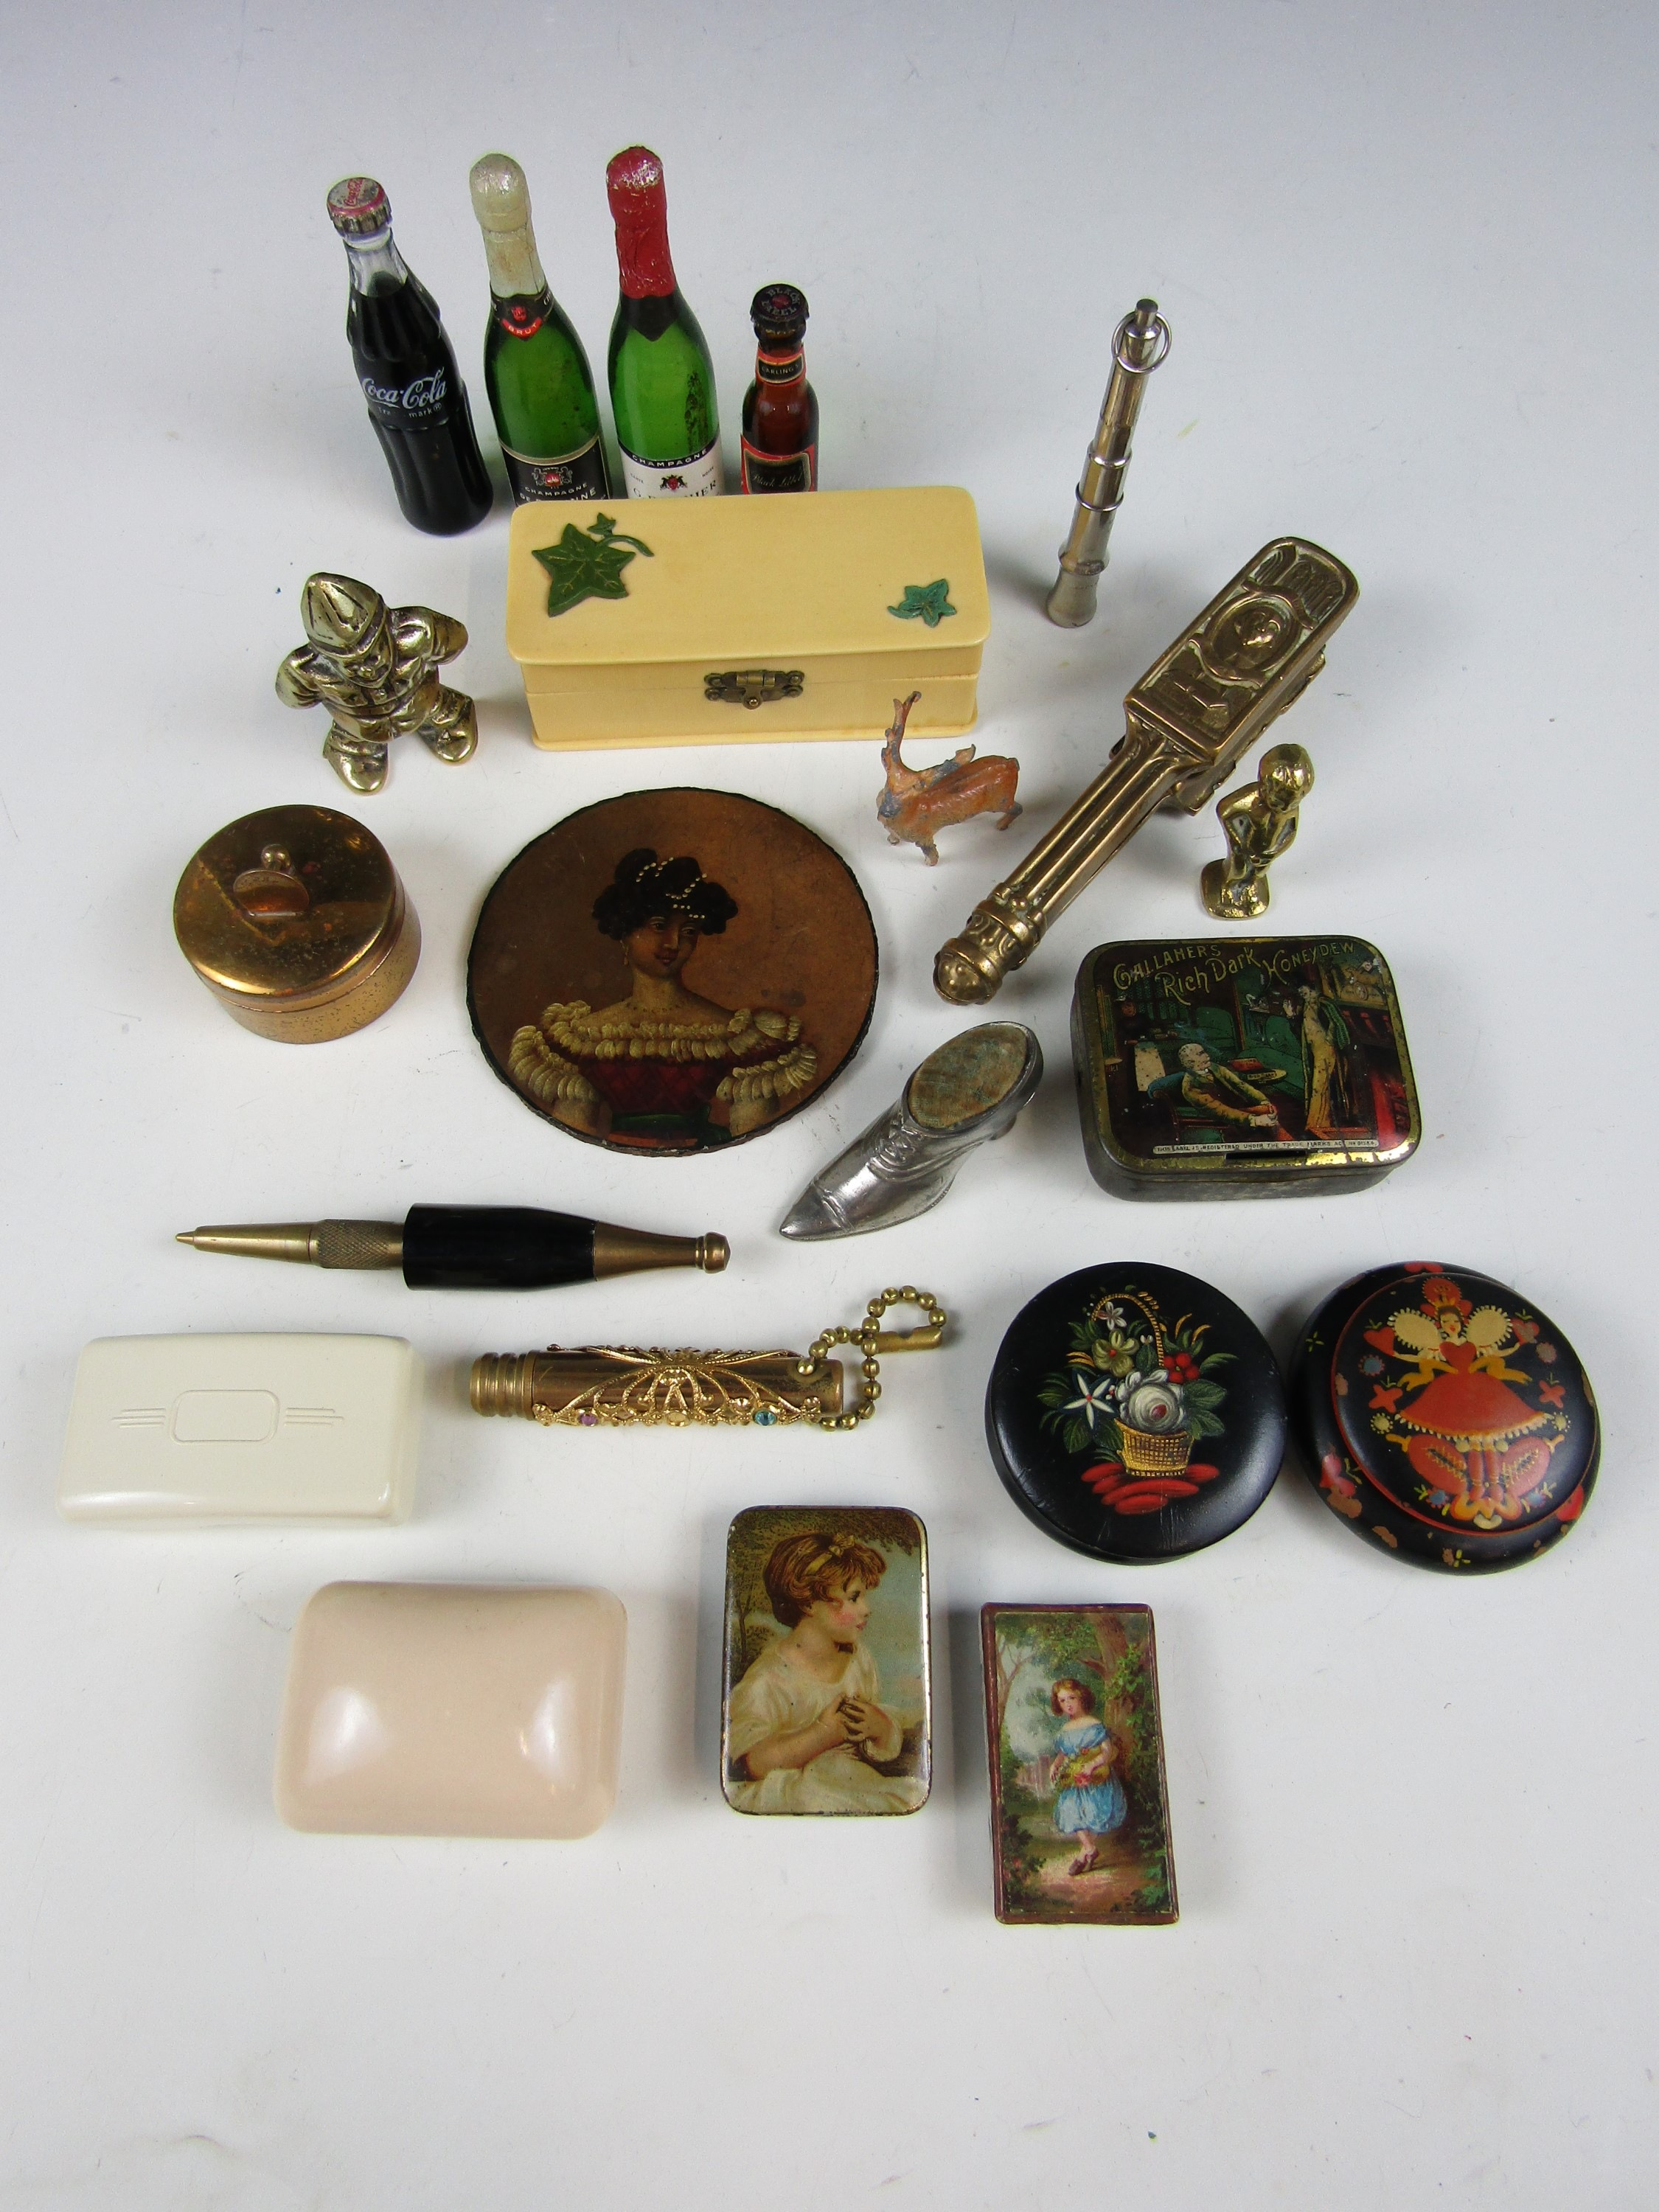 Lot 19 - Sundry collectors' items including Shakespeare nutcrackers and a novelty pen in the form of a bottle